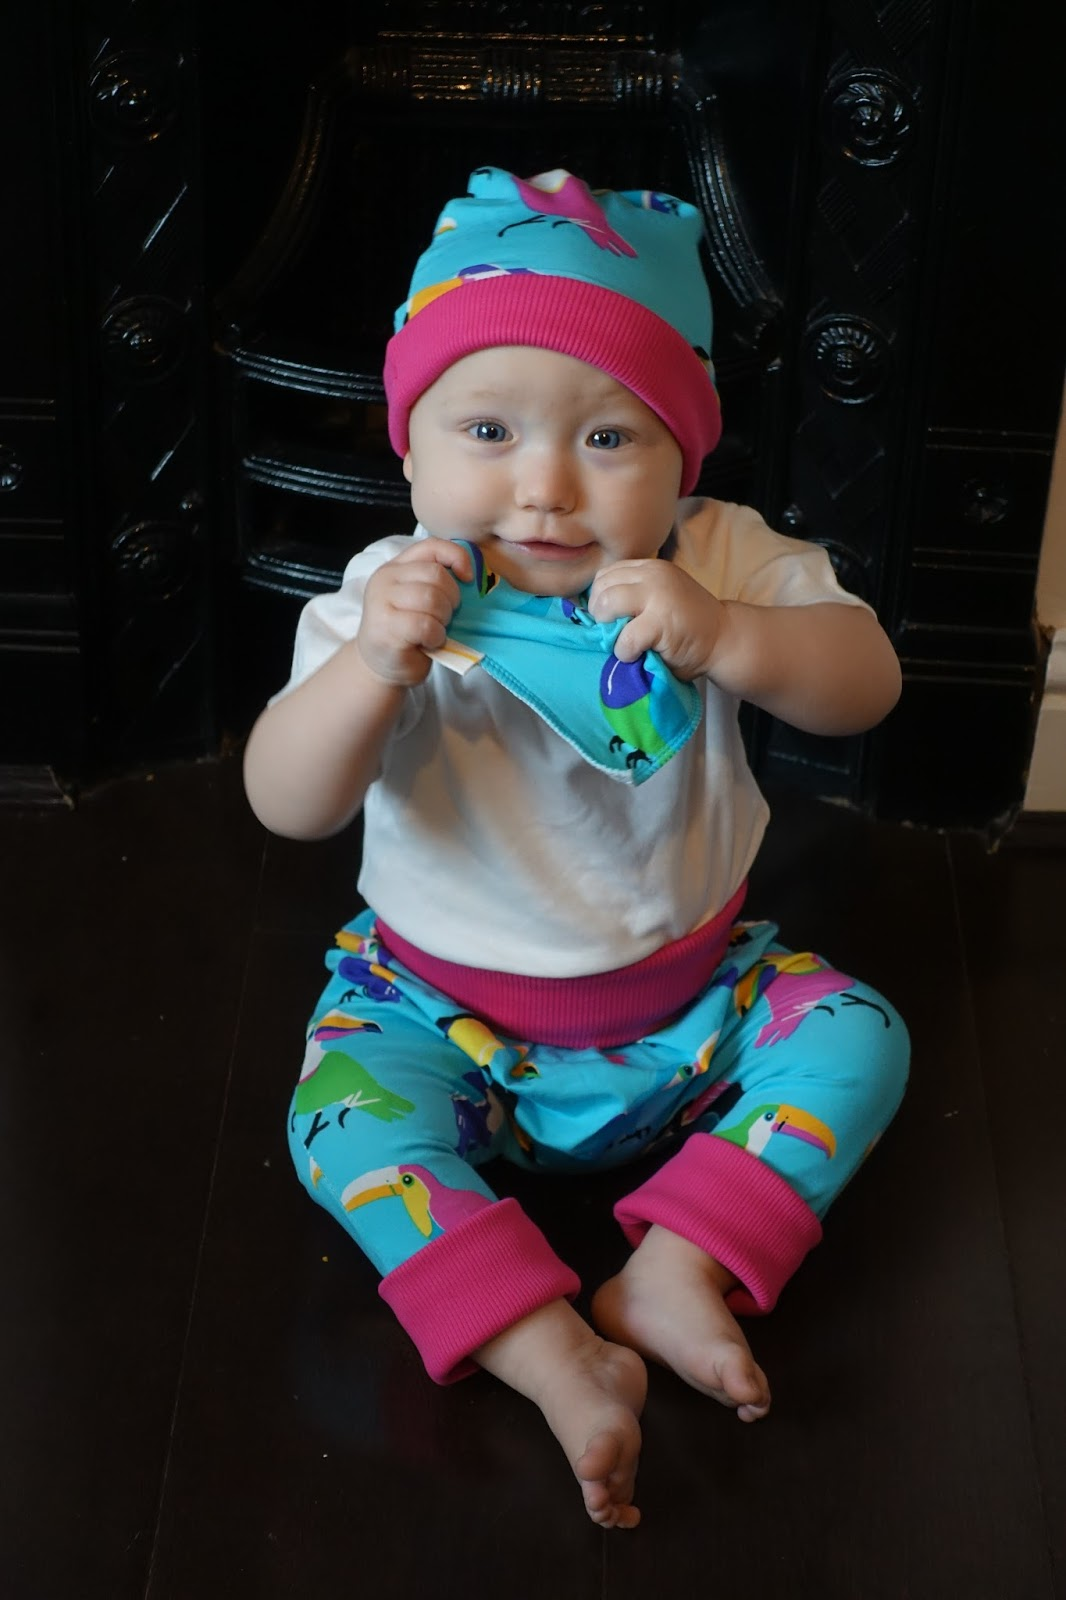 A baby wearing the Funky Toucan Funky Toucan print and pulling at the bib